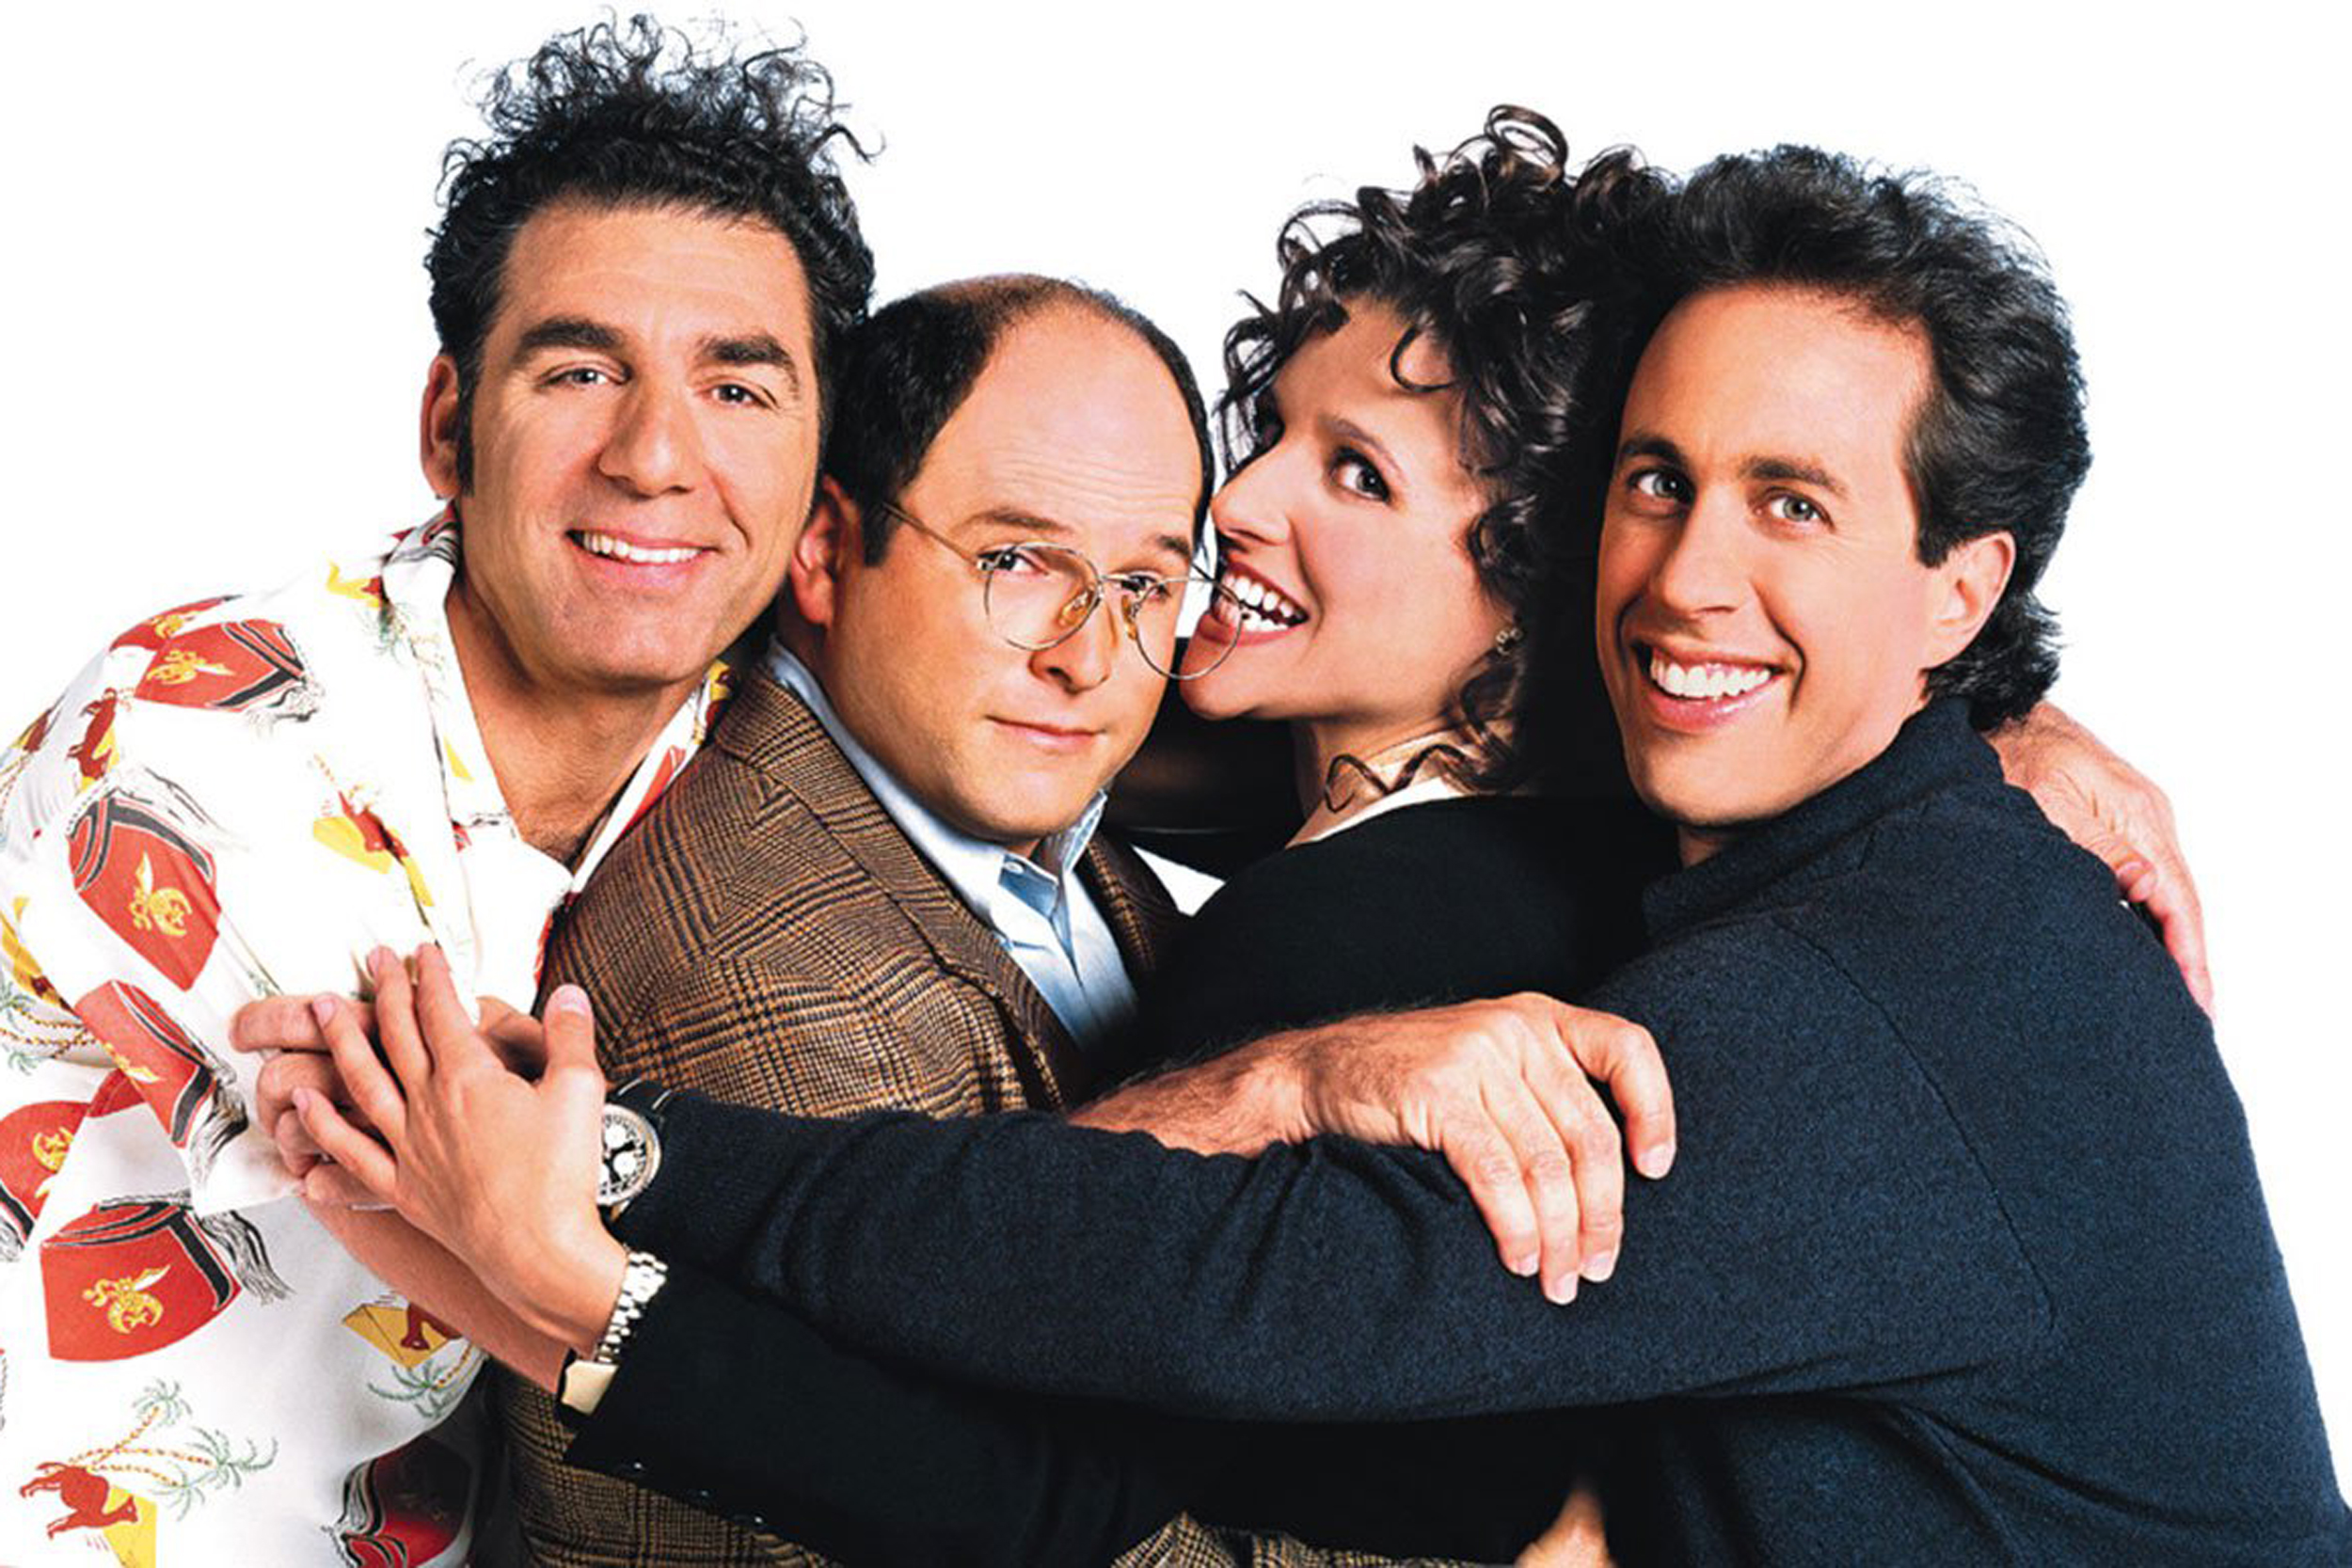 The Seinfeld Uromysitisis Episode